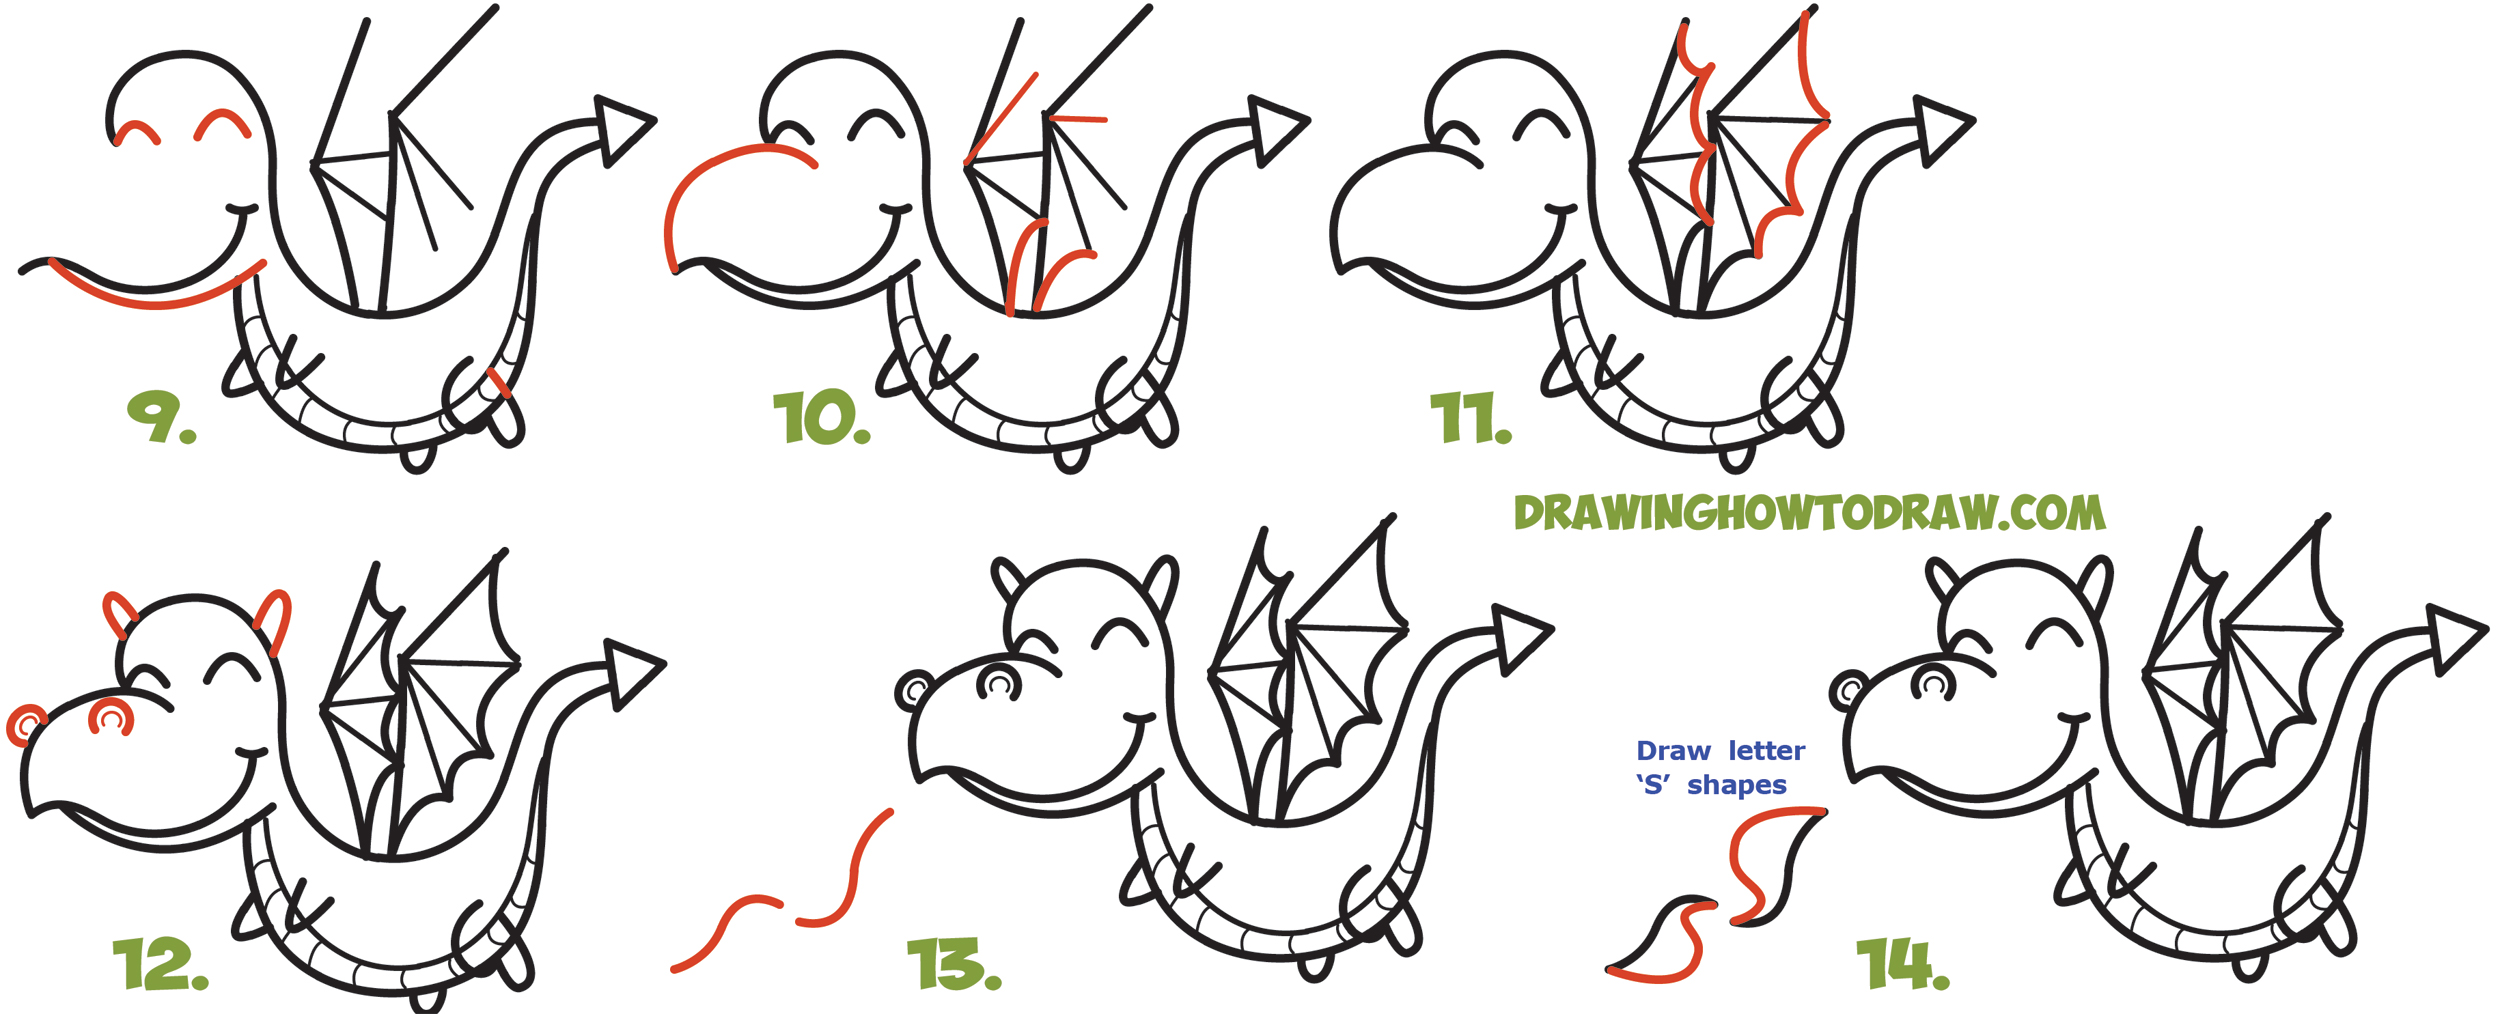 How To Draw A Cute Kawaii Chibi Dragon Shooting Fire With Easy Step By Step  Learn